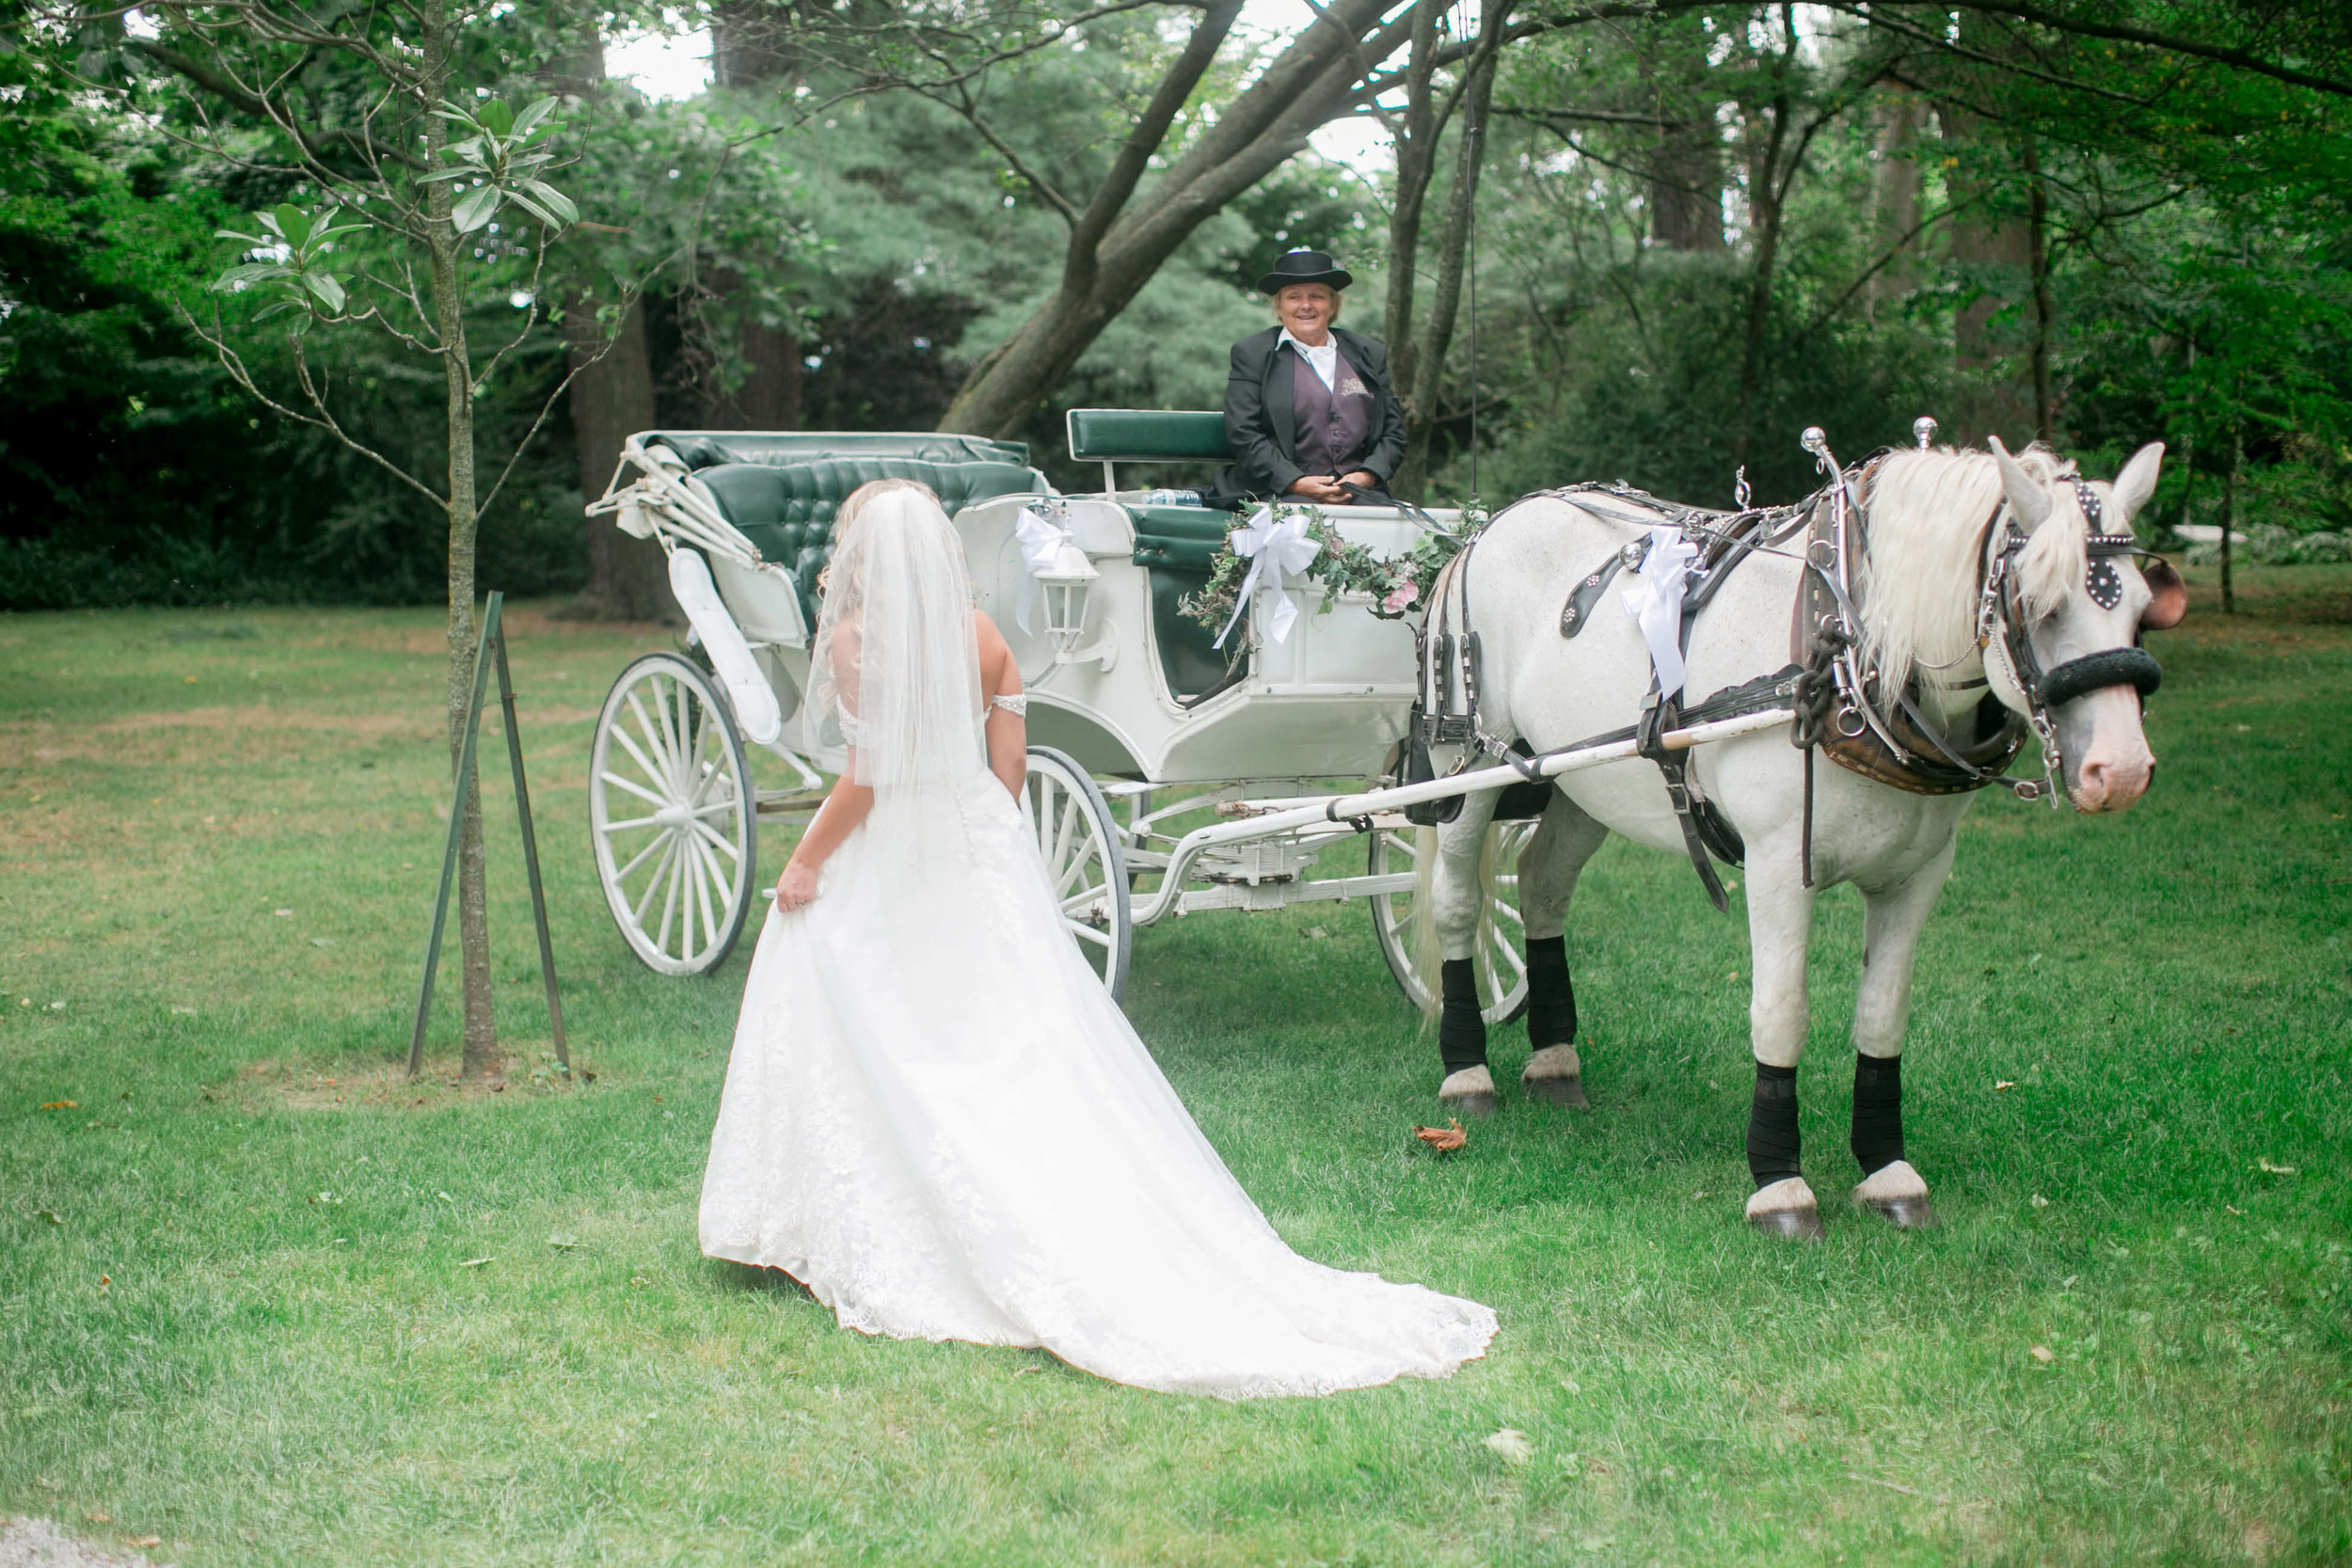 Ashley___Zac___Daniel_Ricci_Weddings___High_Res._Finals_256.jpg